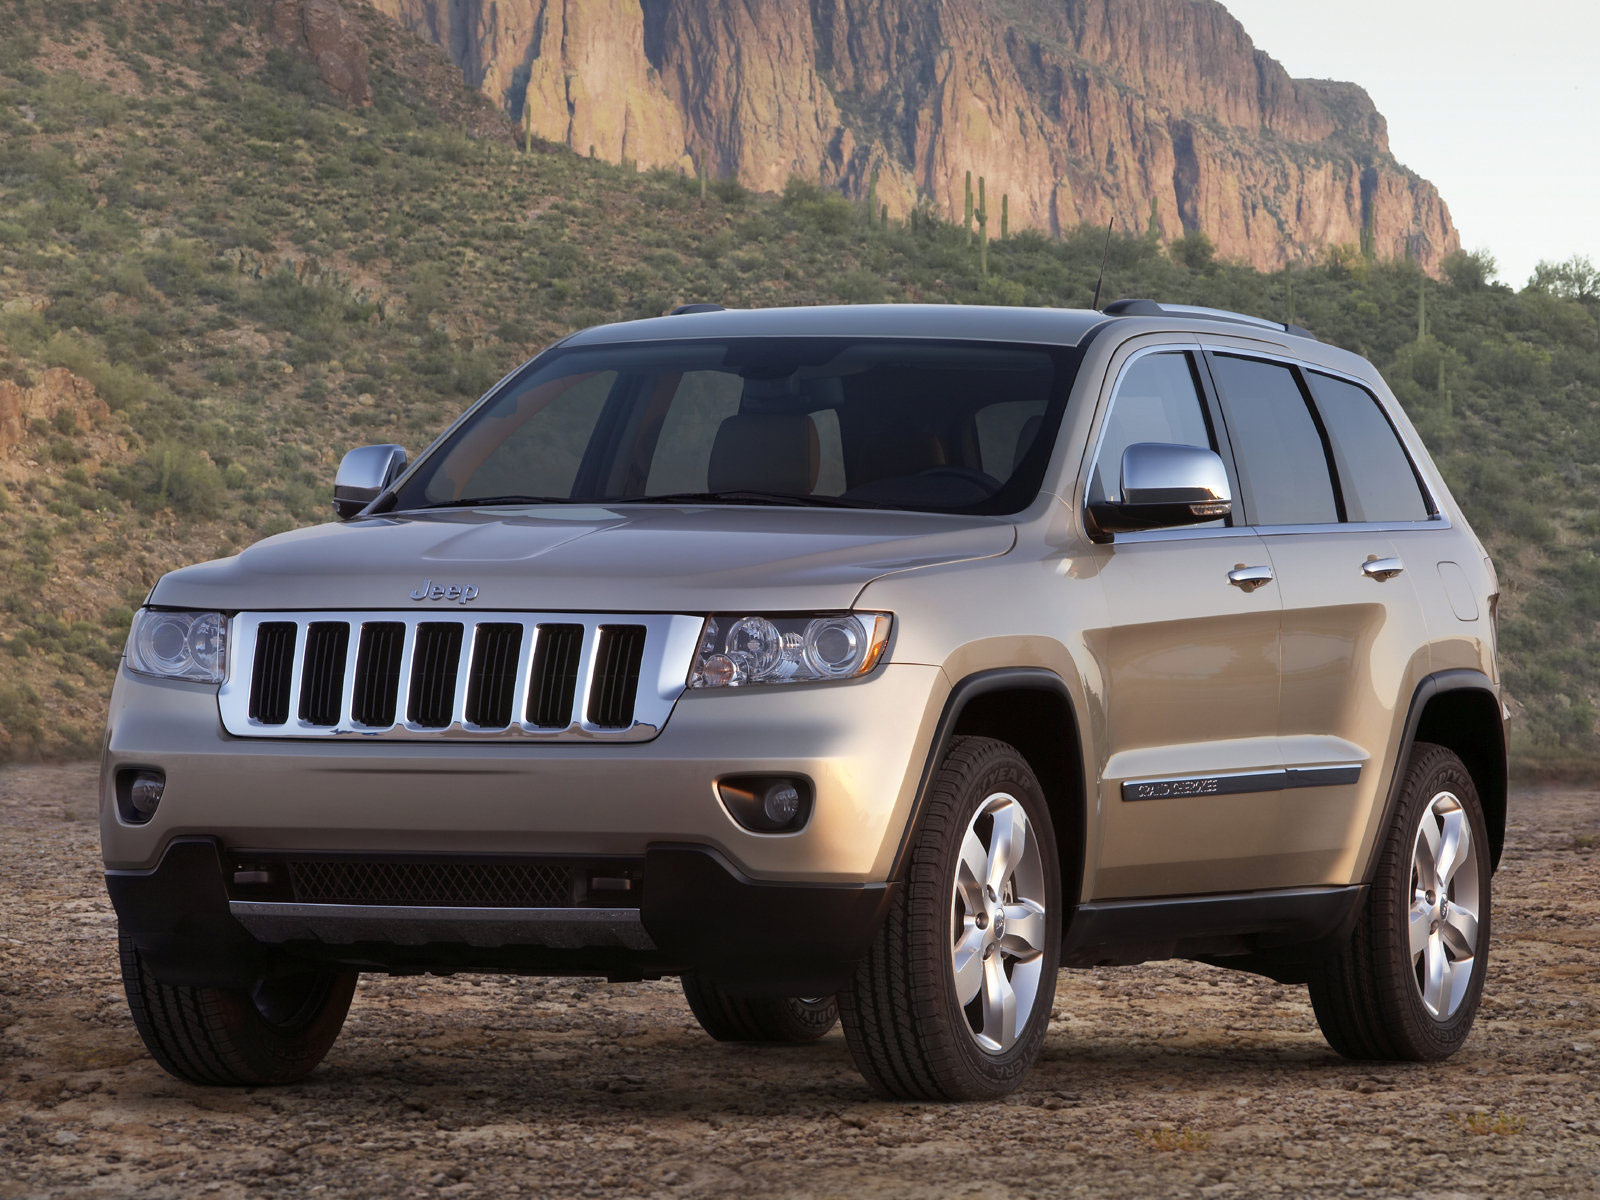 Download Gambar Mobil Jeep Grand Cherokee 2011